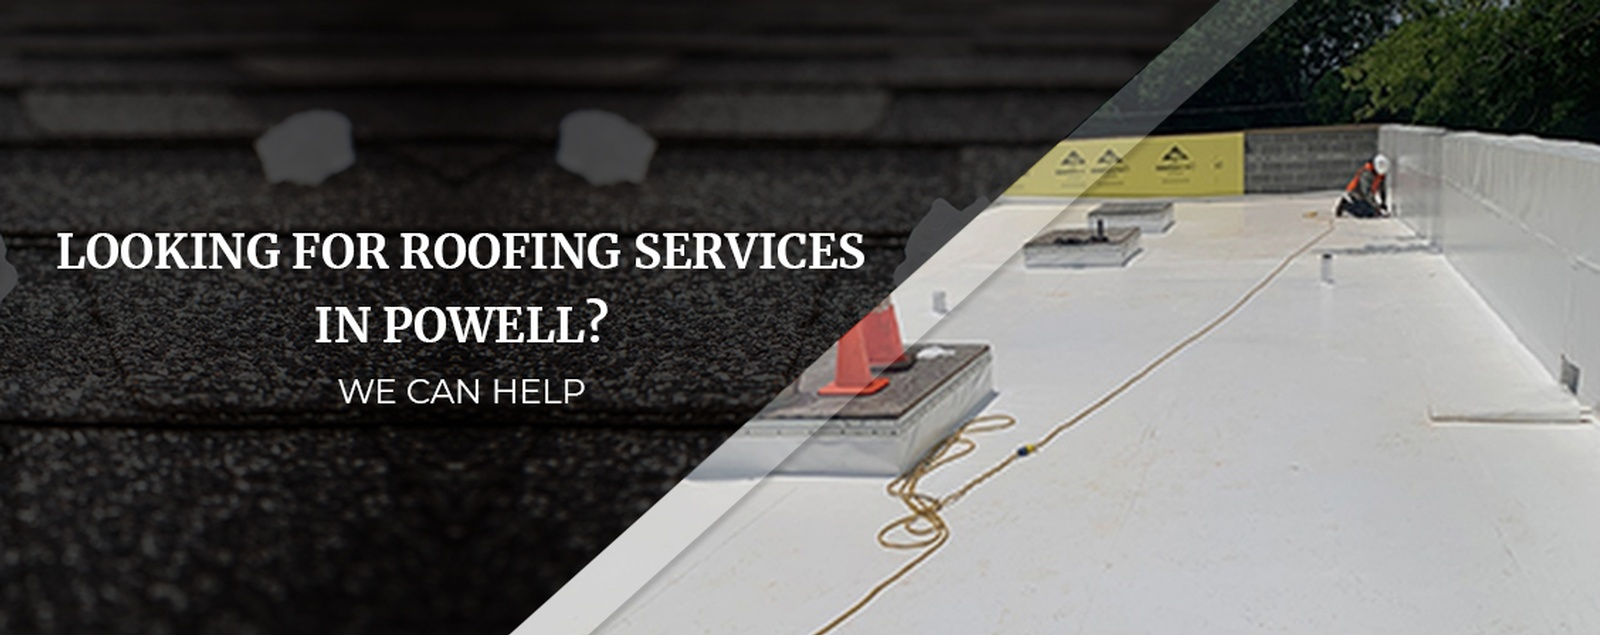 Looking For Roofing Services In Powell We Can Help